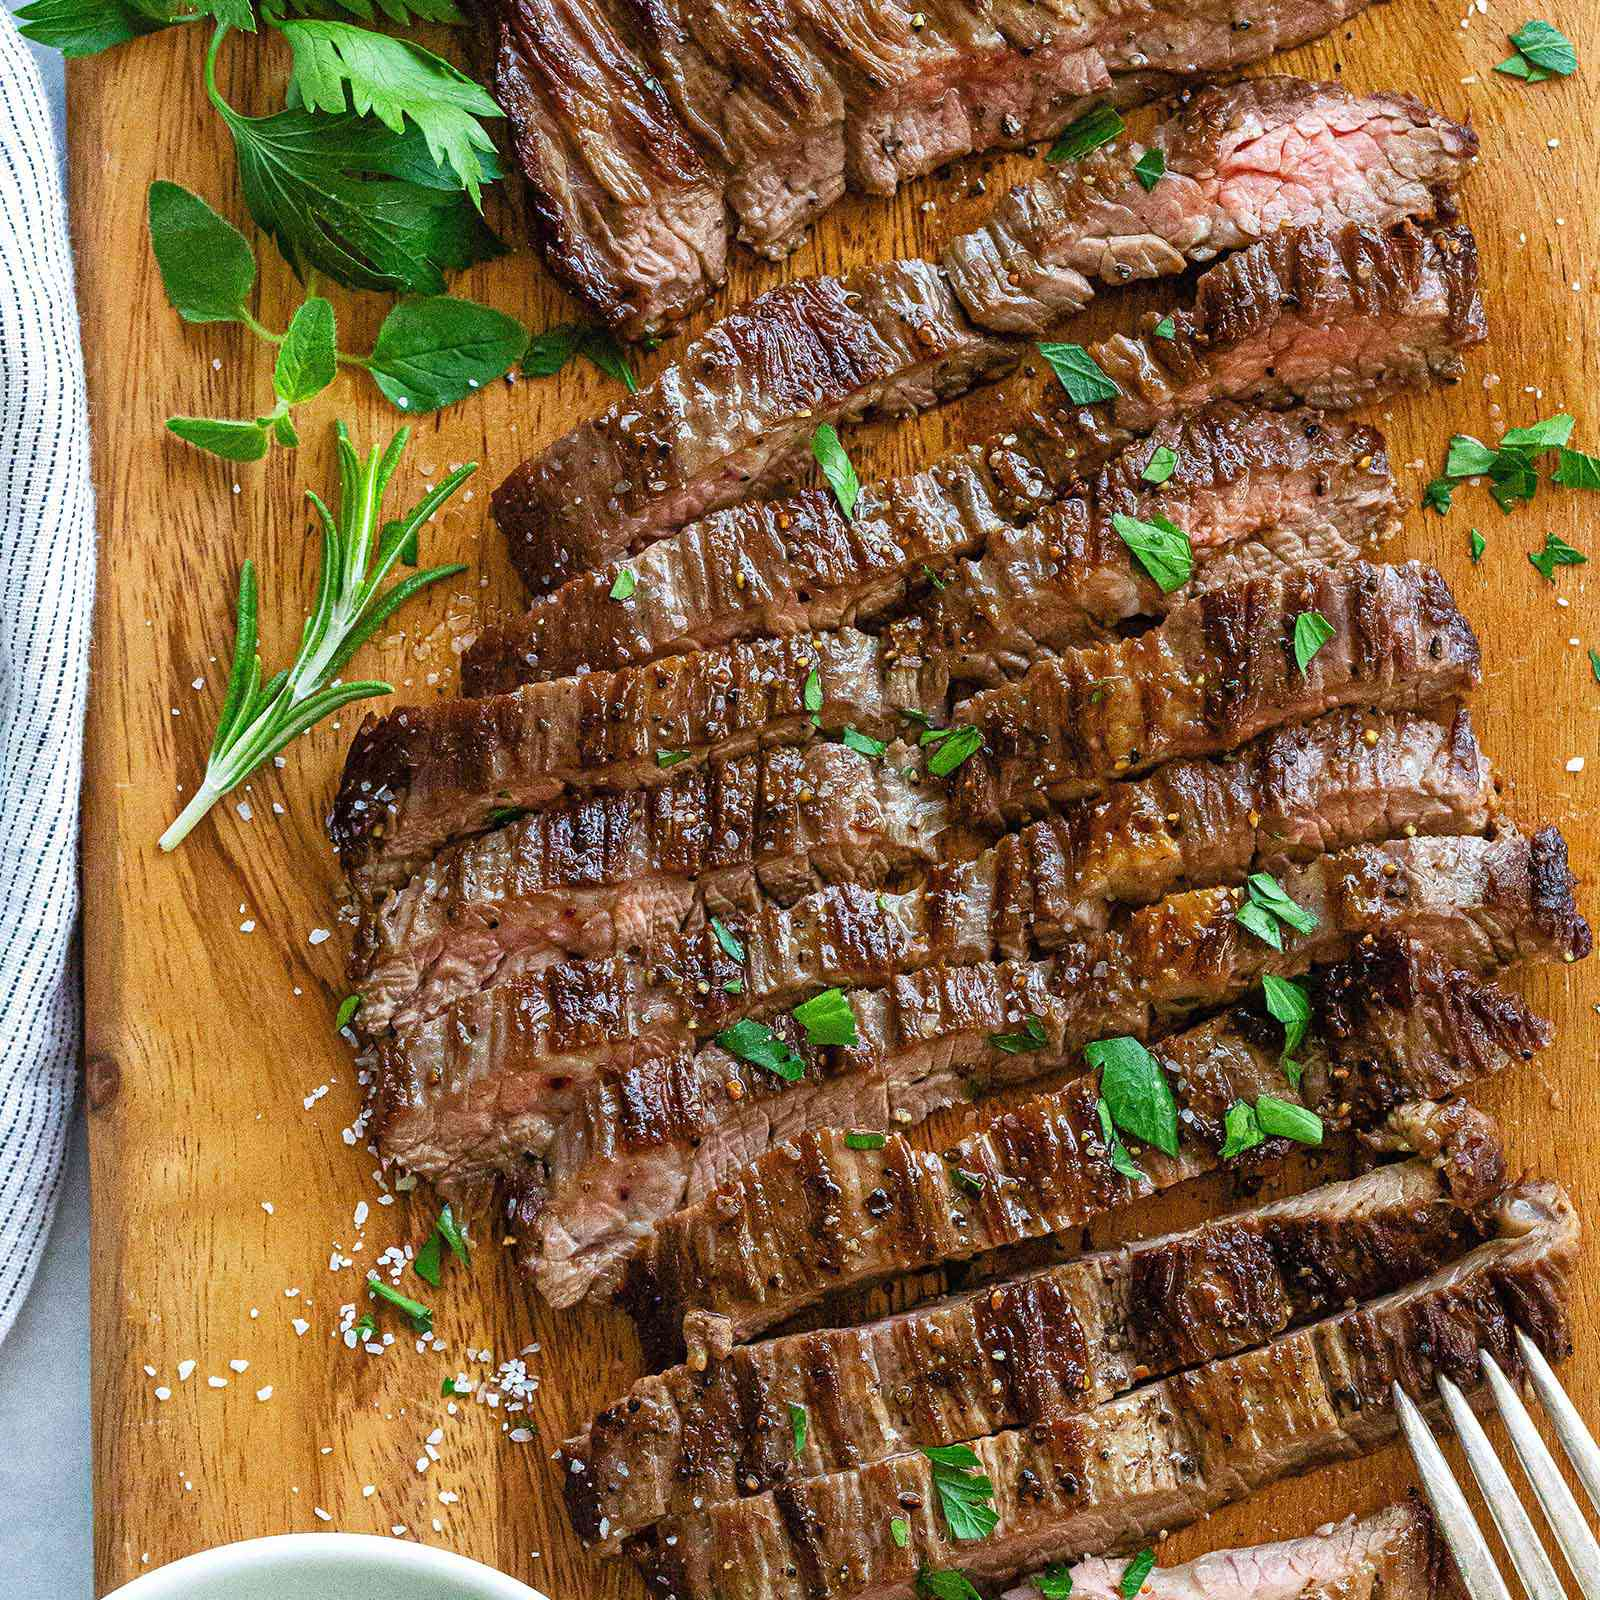 opt aboutcom coeus resources content migration simply recipes uploads 2019 08 HT Cook Skirt Steak LEAD 7 fbd0ee46b0bf4b0c9eb8b2435e55ee76